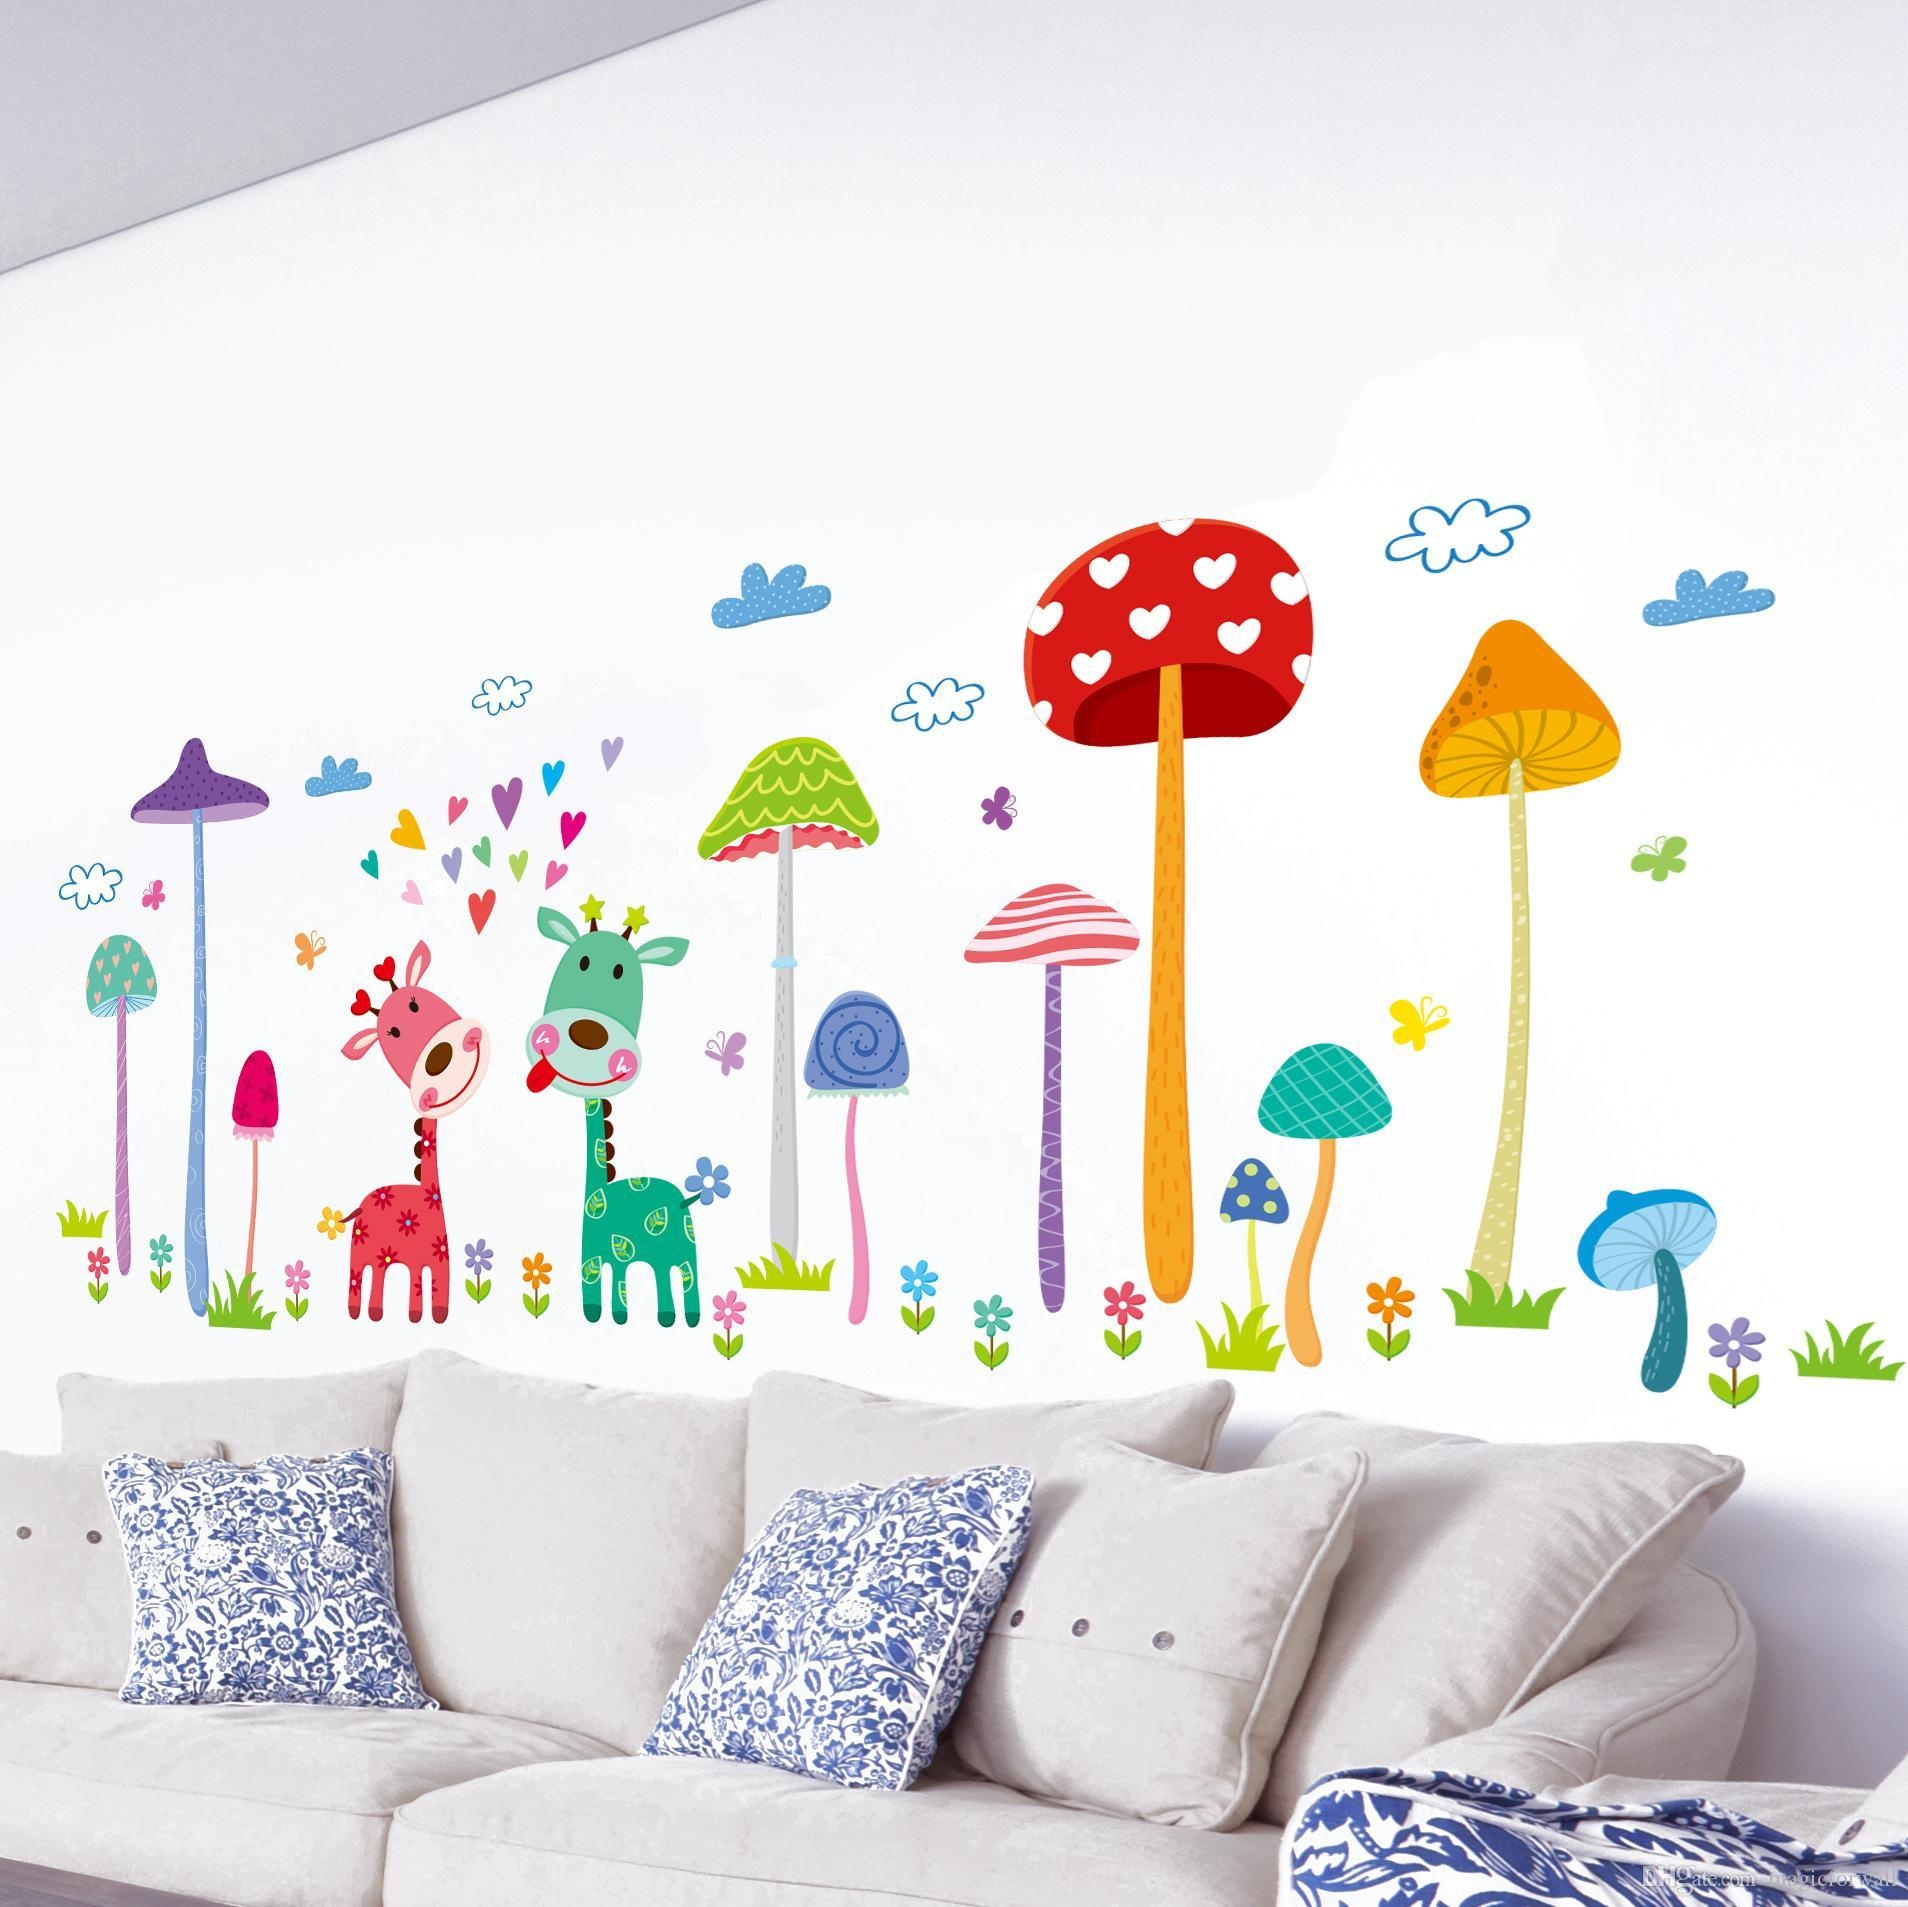 Forest Mushroom Deer Animals Home Wall Art Mural Decor Kids Babies In Wall Art Stickers For Childrens Rooms (View 10 of 20)